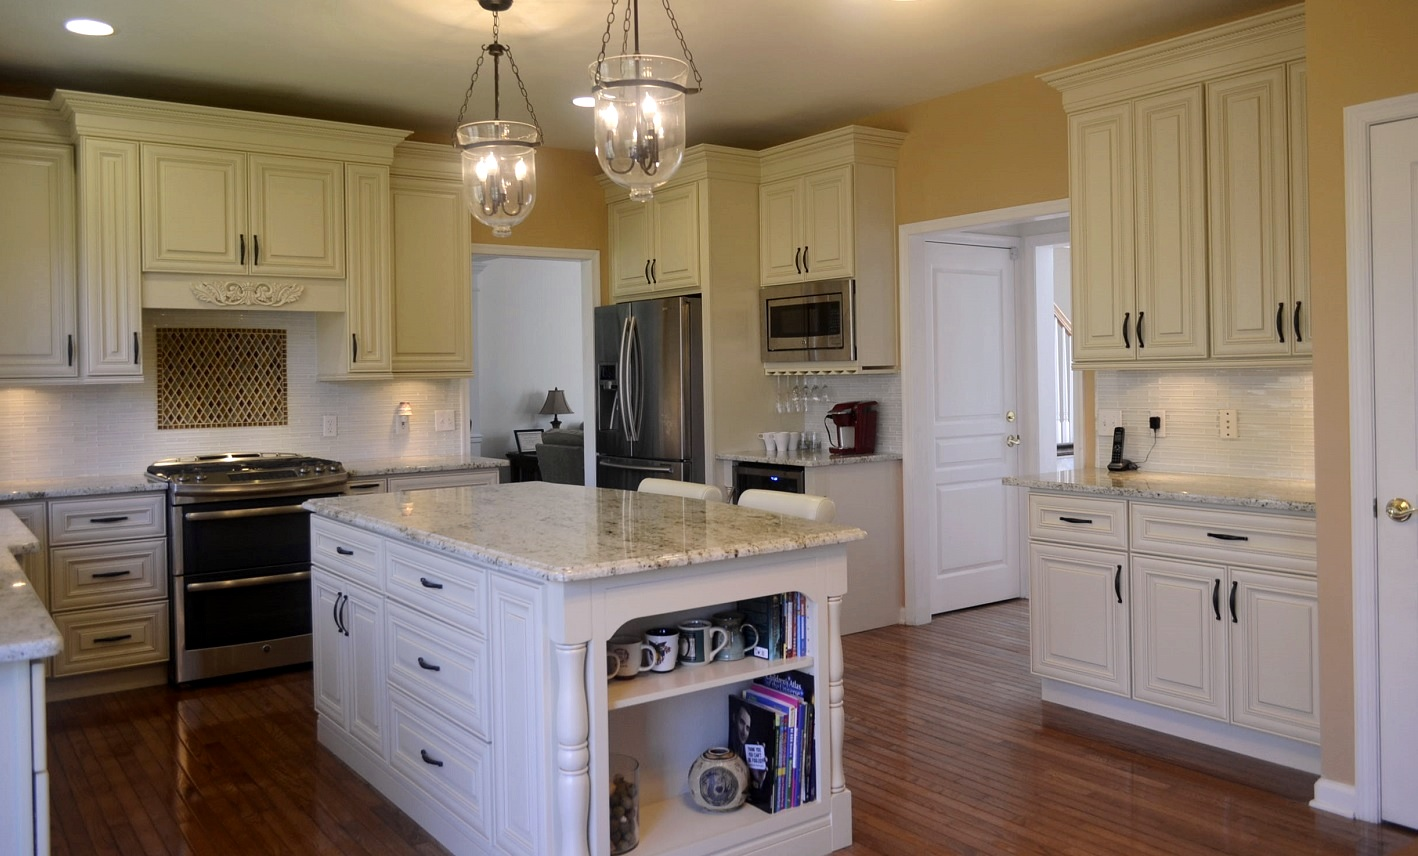 Kitchen cabinets avl trading llc for Kitchen cabinets 60056